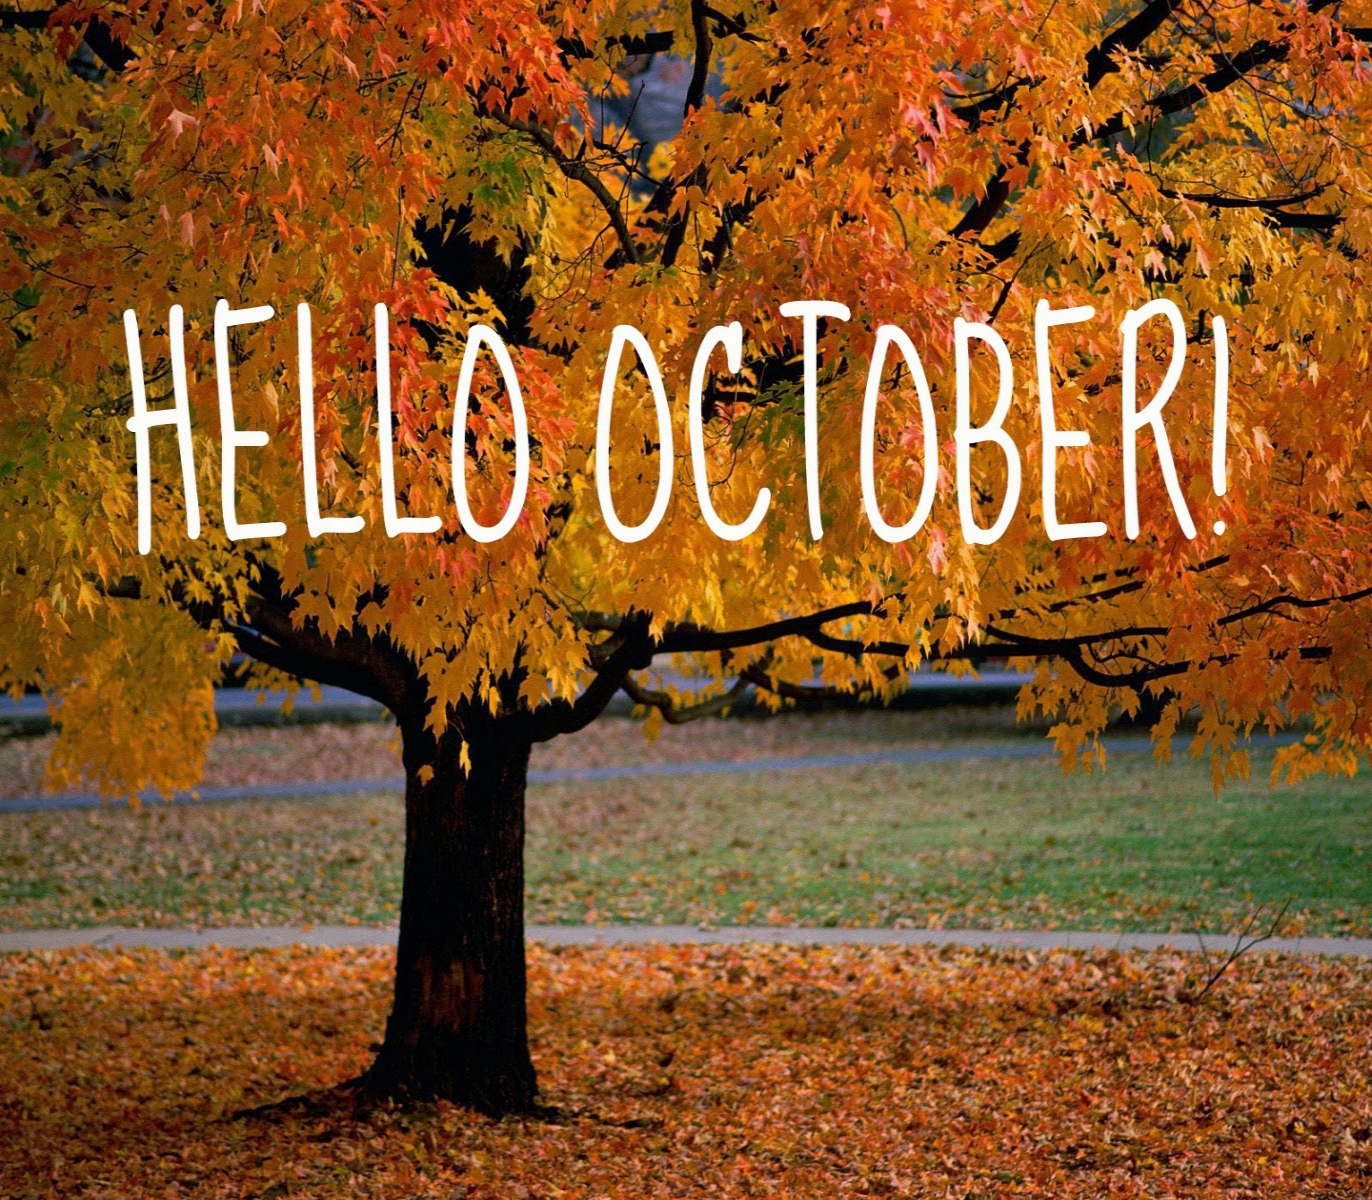 October has come! What will you plant this month